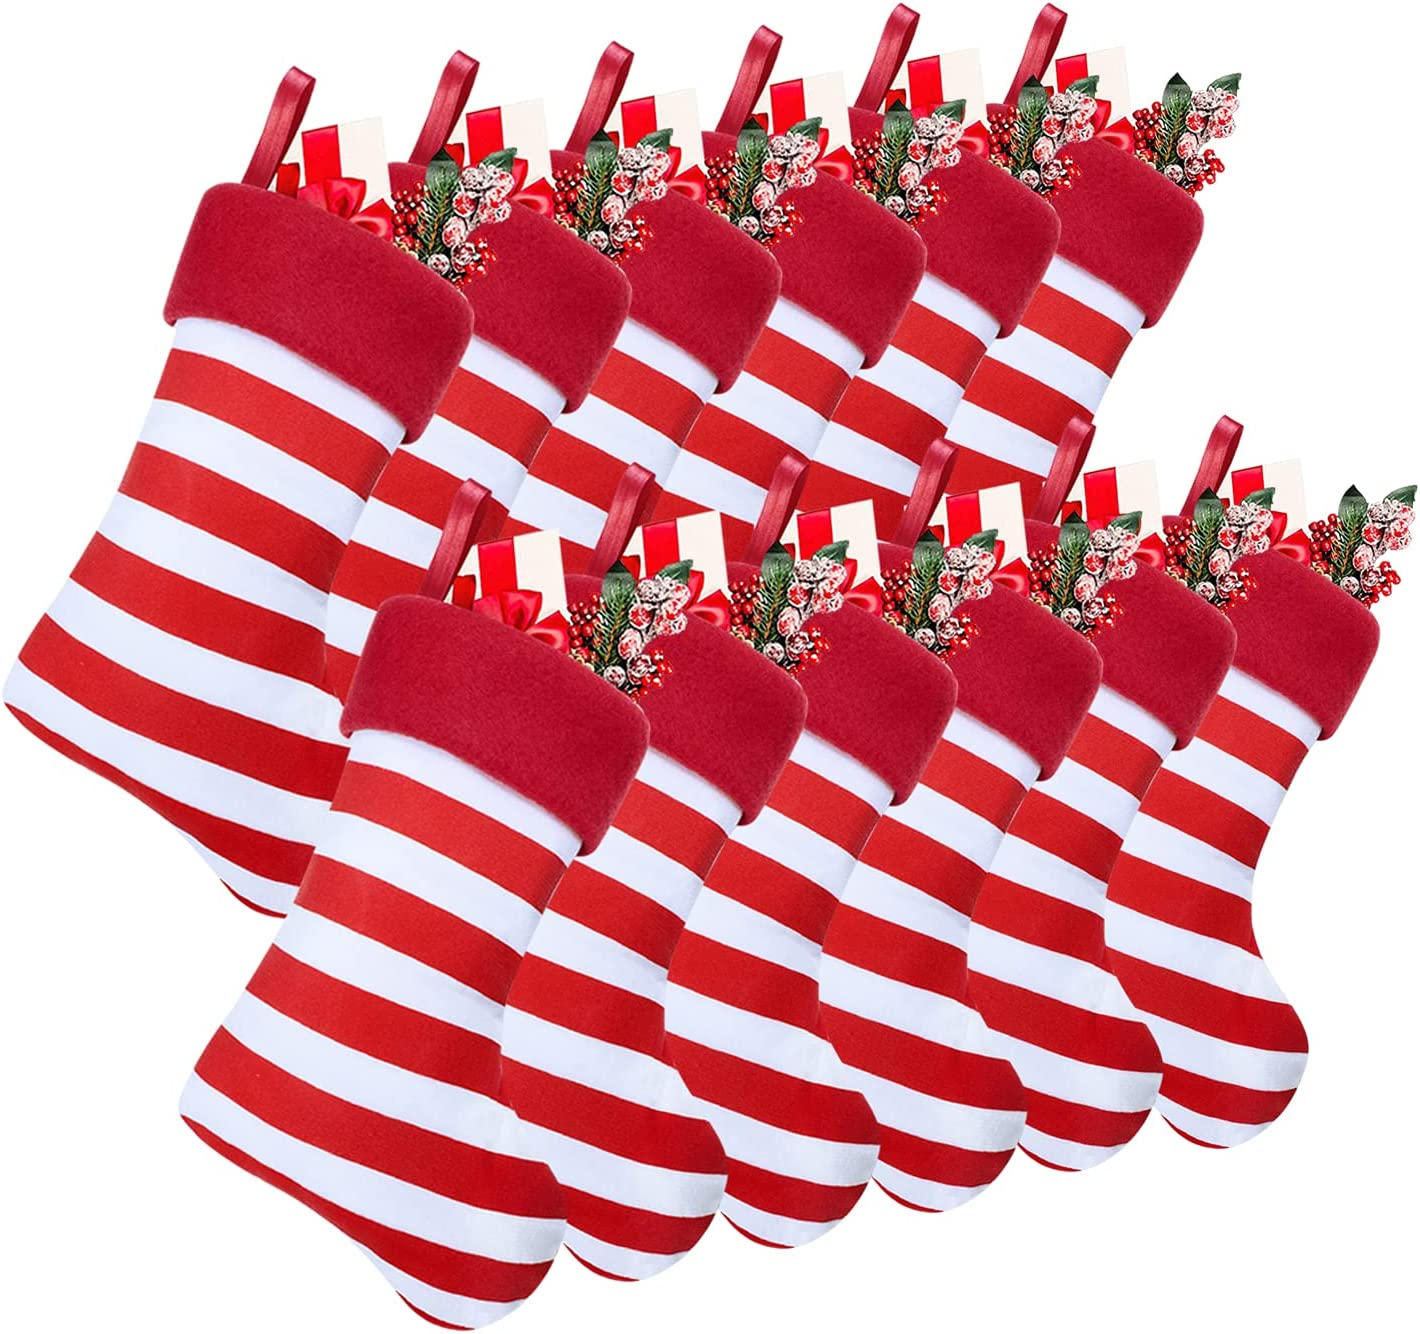 Max 66% OFF Ltcyev 12 Pack Christmas Stockings Mini Stripe Phoenix Mall Tre and White Red